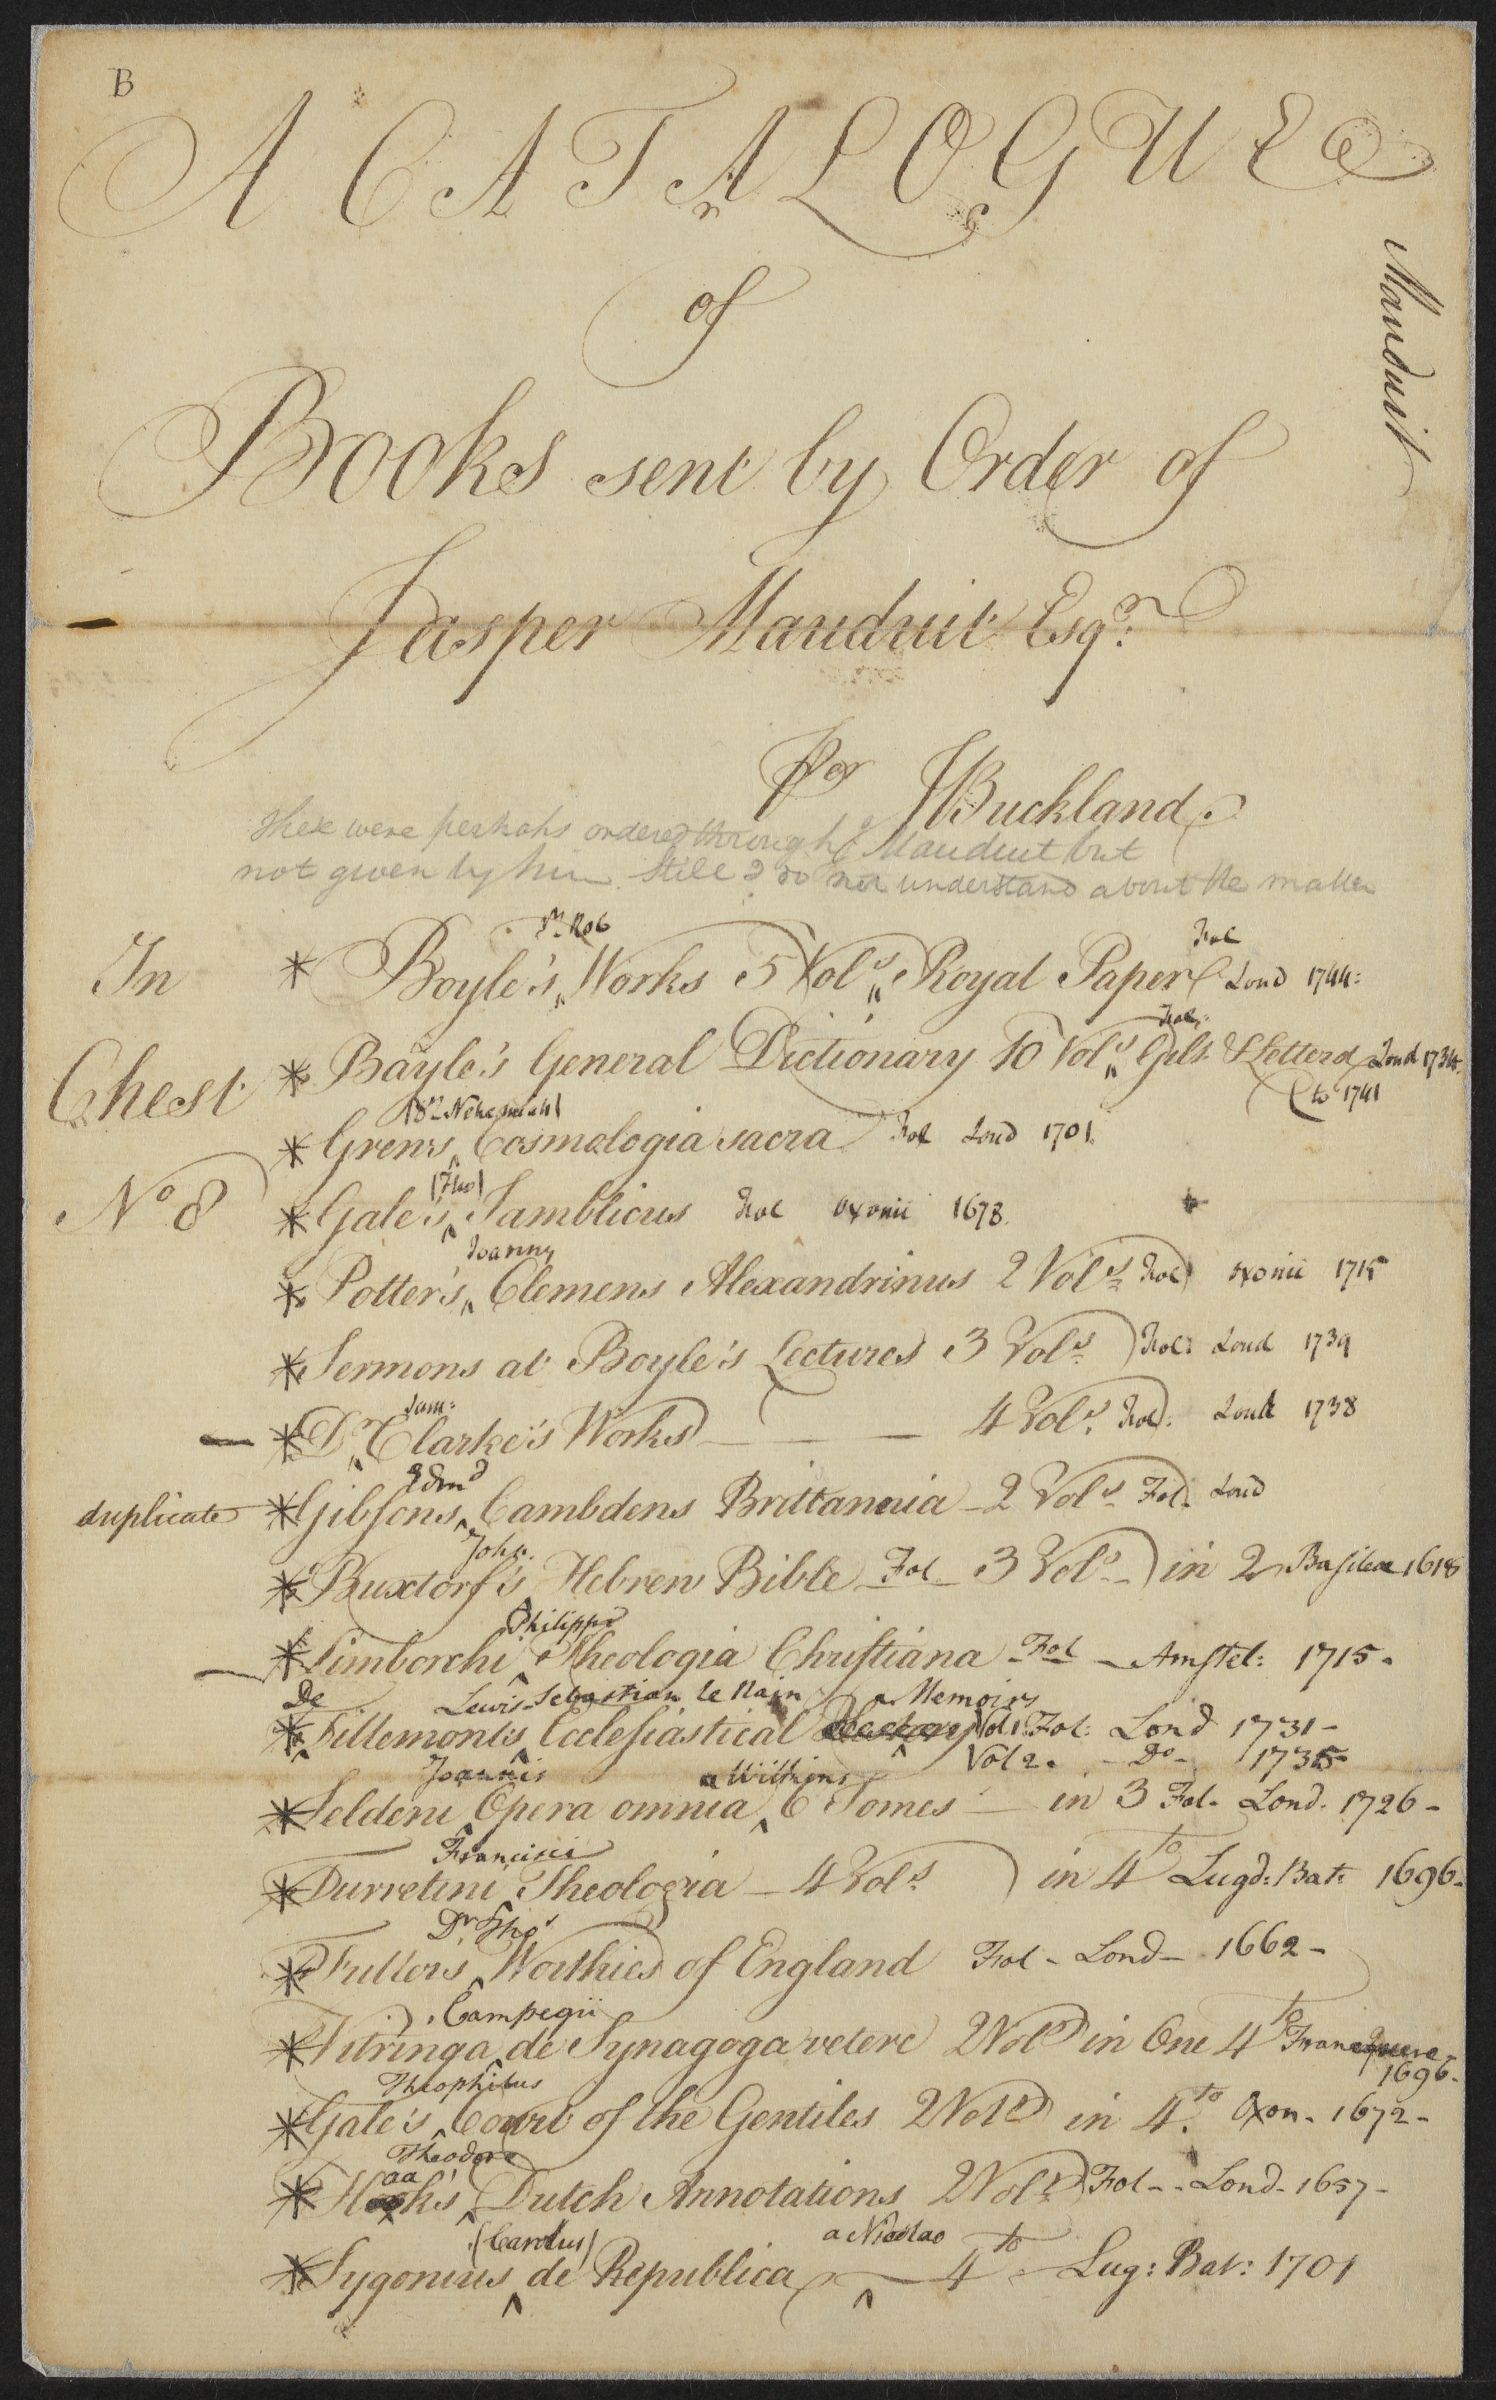 """A Catalogue of books sent by order of Jasper Mauduit, Esq. per J. Buckland,"" undated"